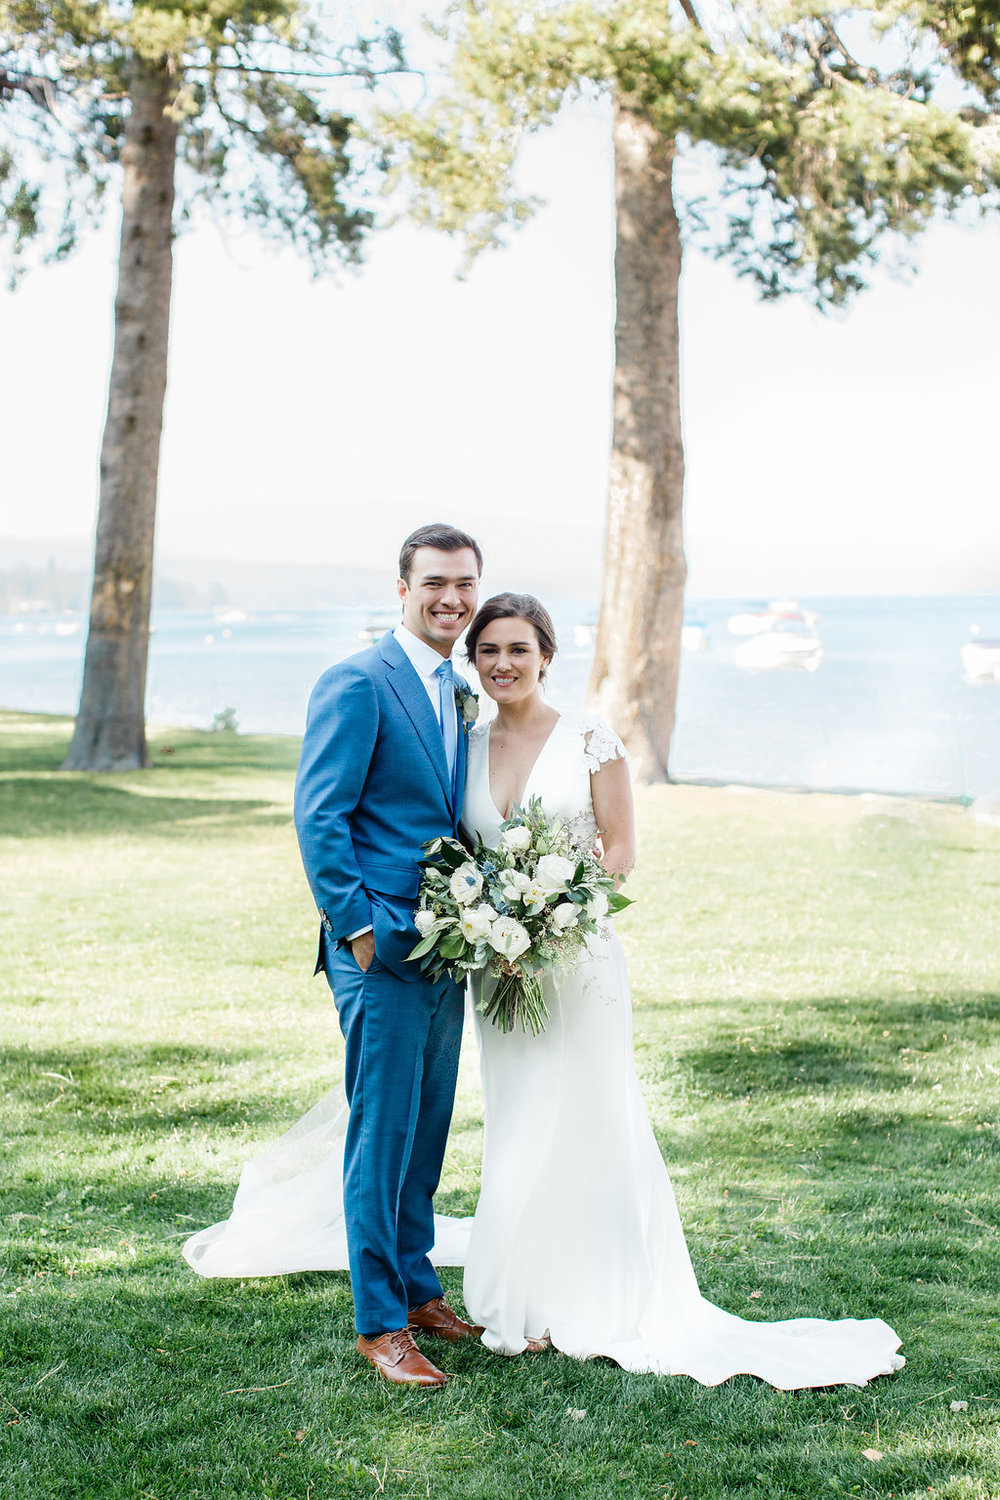 kat+seanwedding_august4_2018_tahoe-683.jpg